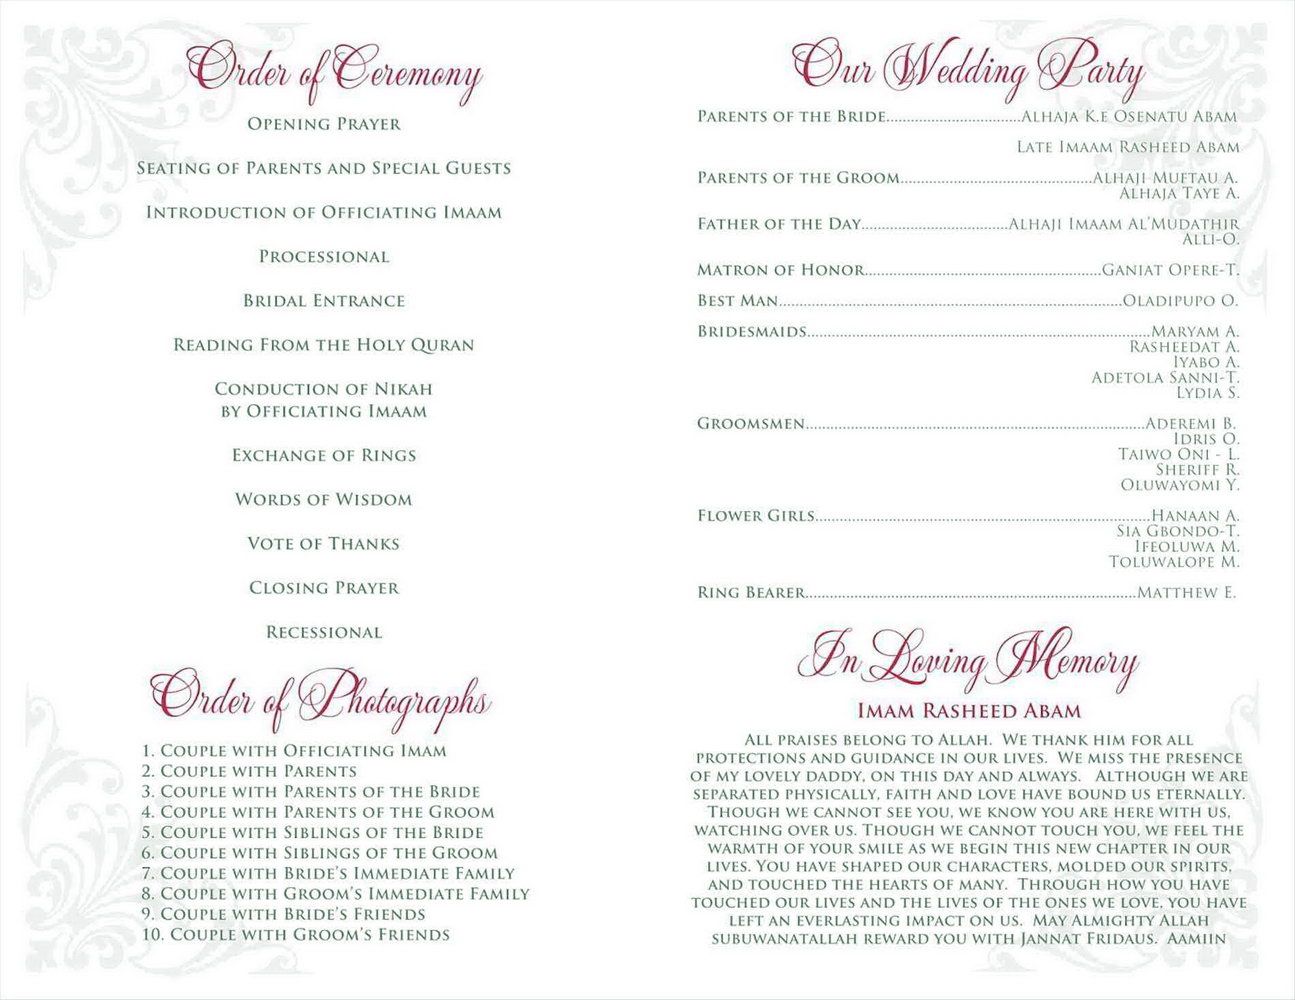 Retirement Ceremony Program Templates